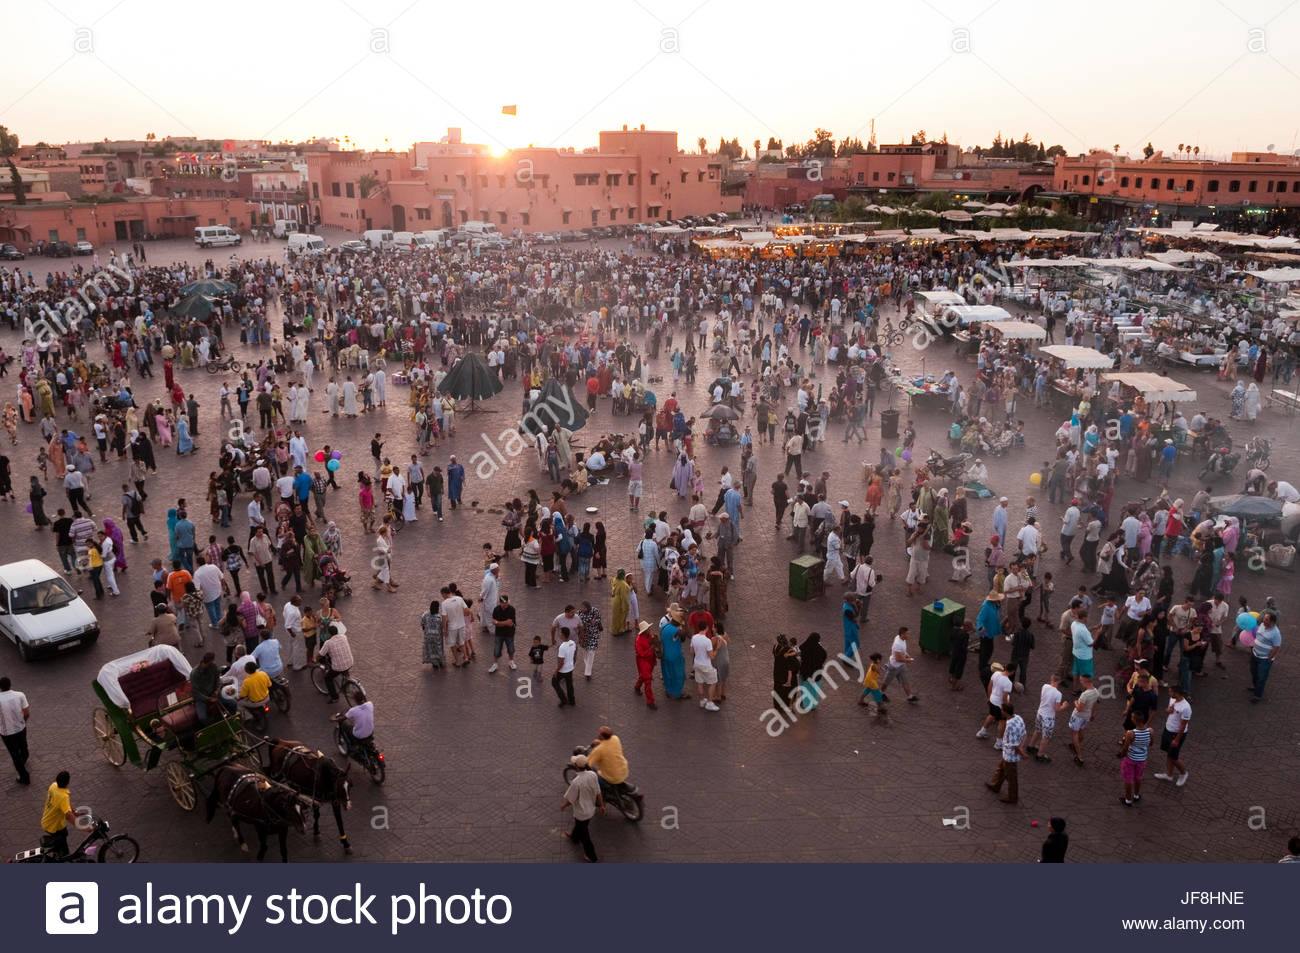 Crowds gathering in Jema al Fna Square at sunset for the nightly food stalls. - Stock Image